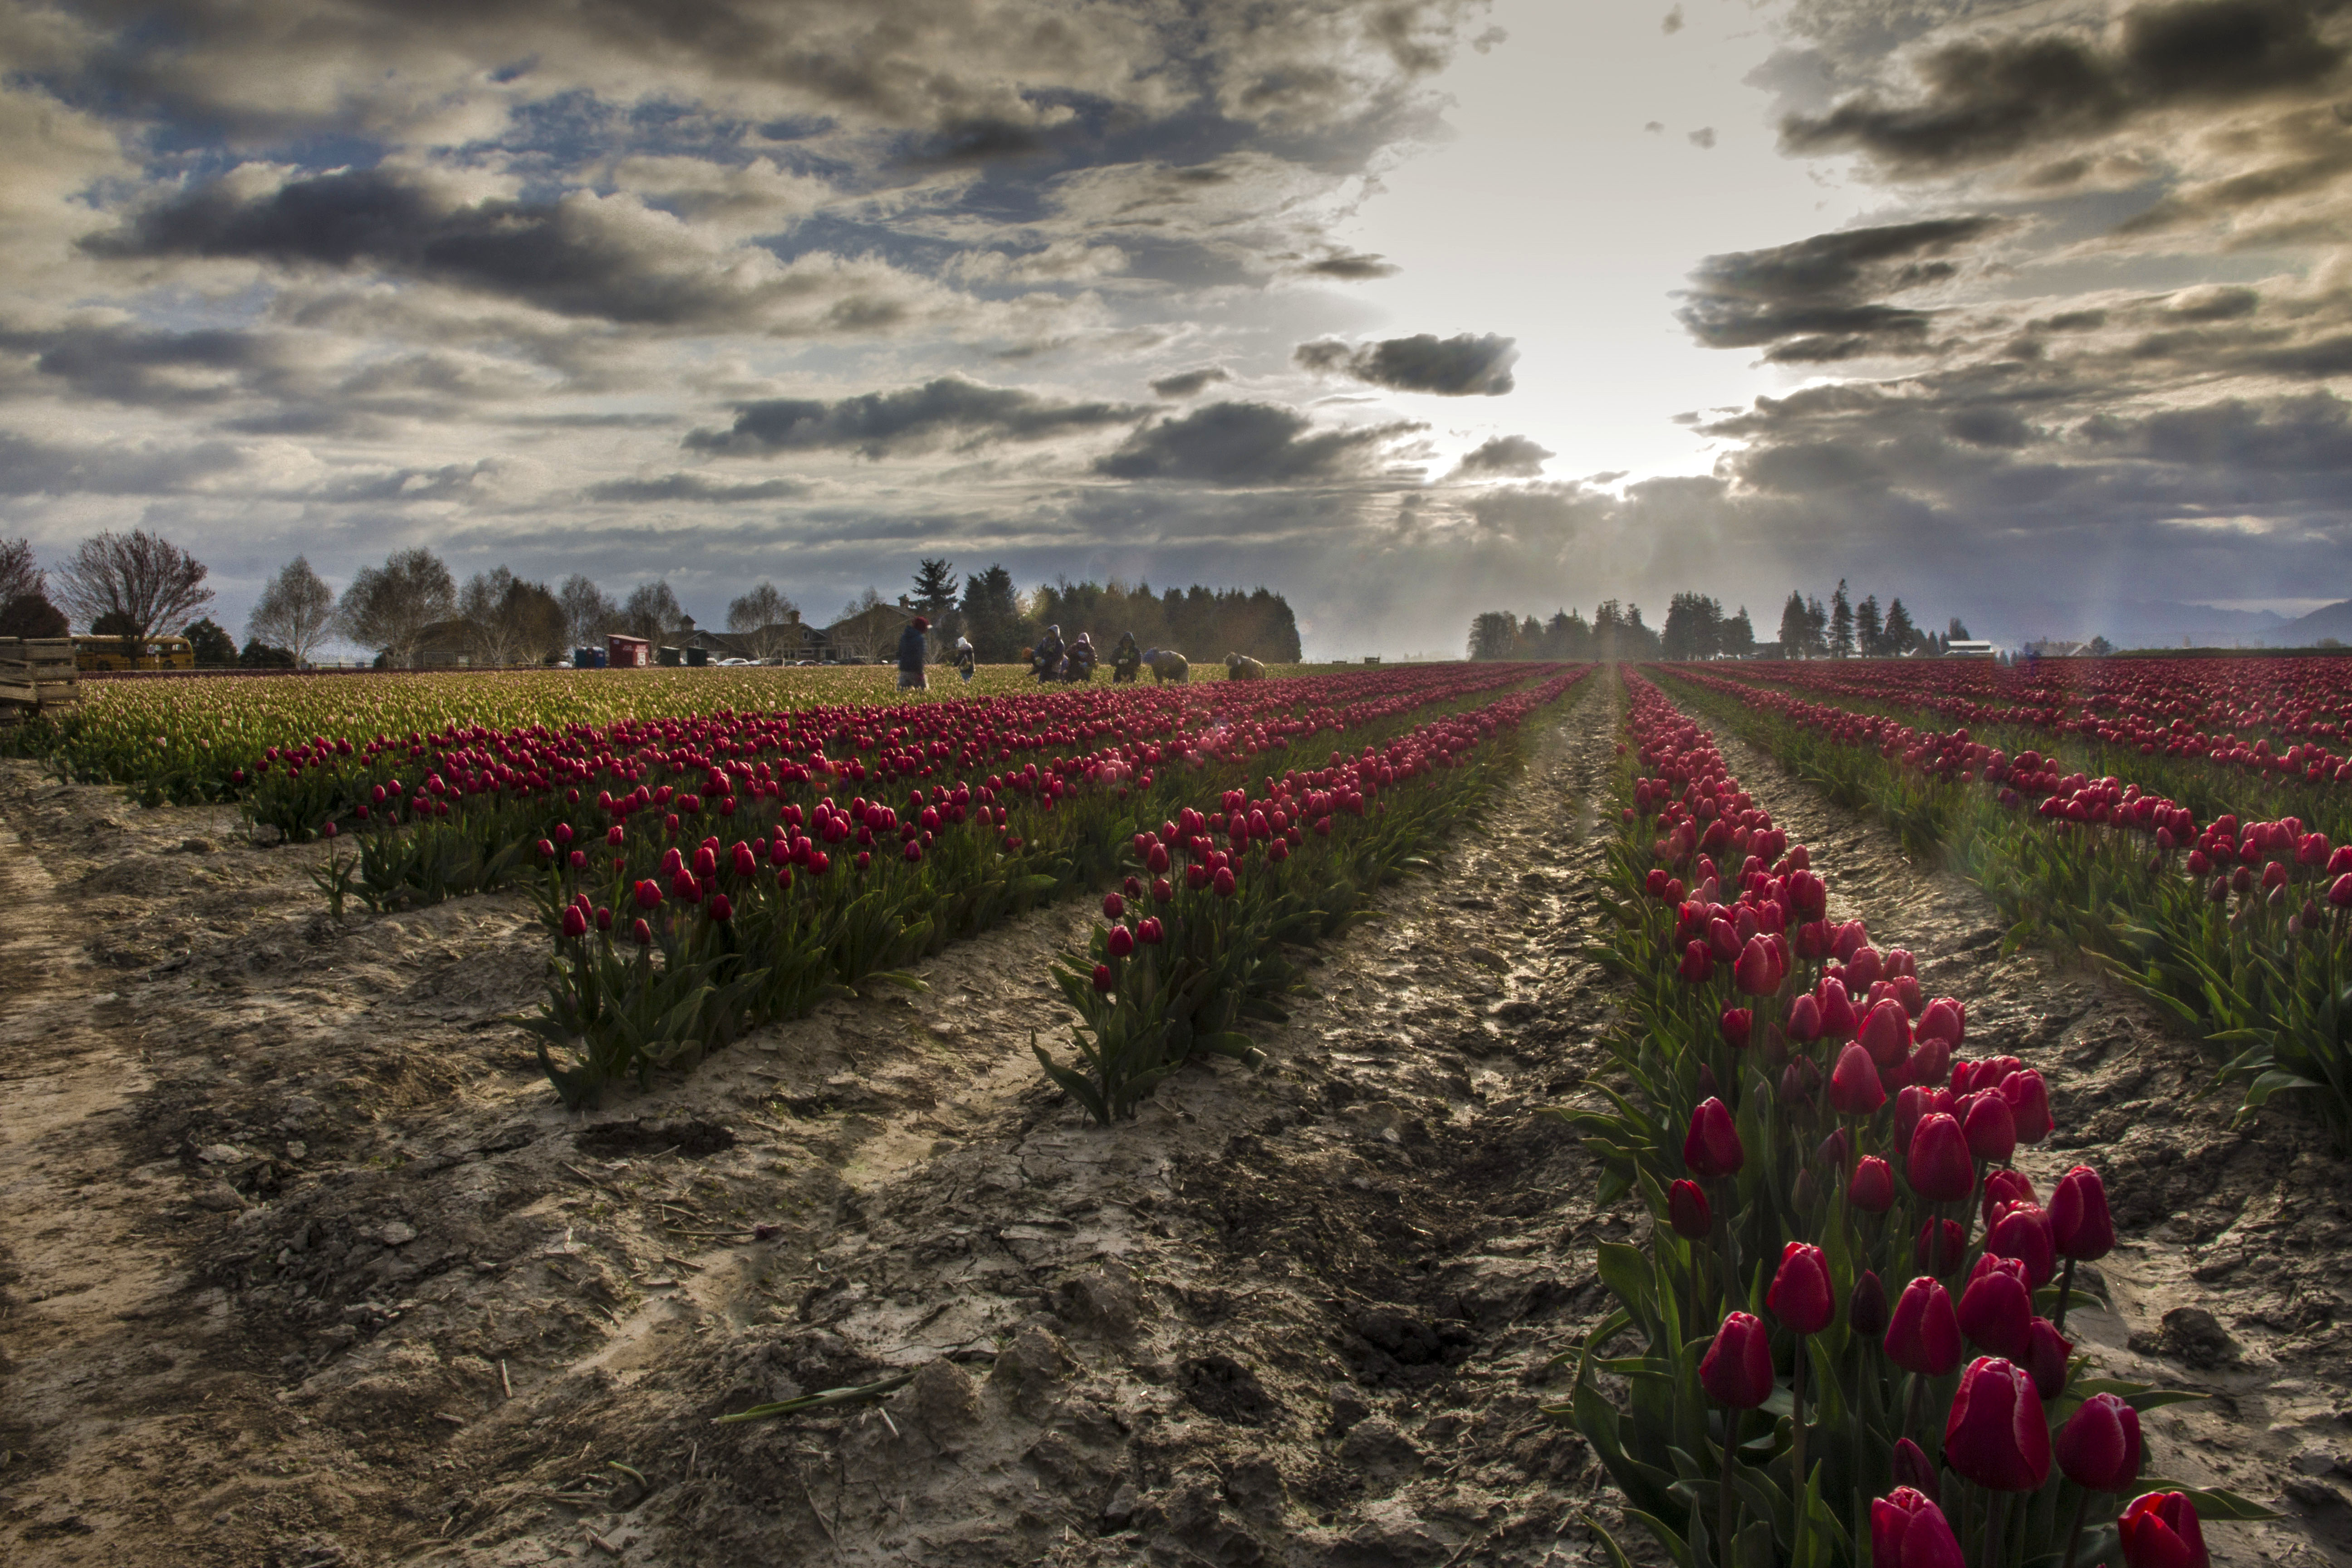 tulip festival | North Western Images - photos by Andy Porter